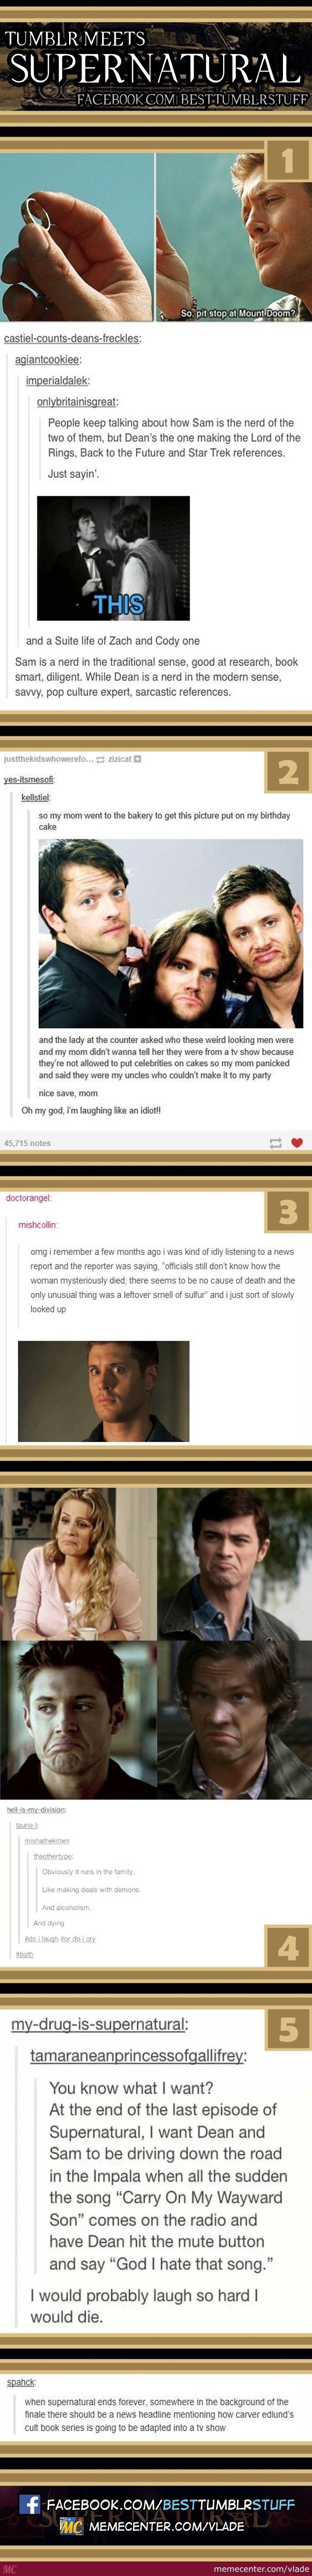 Tumblr Meets Supernatural by vlade - Meme Center